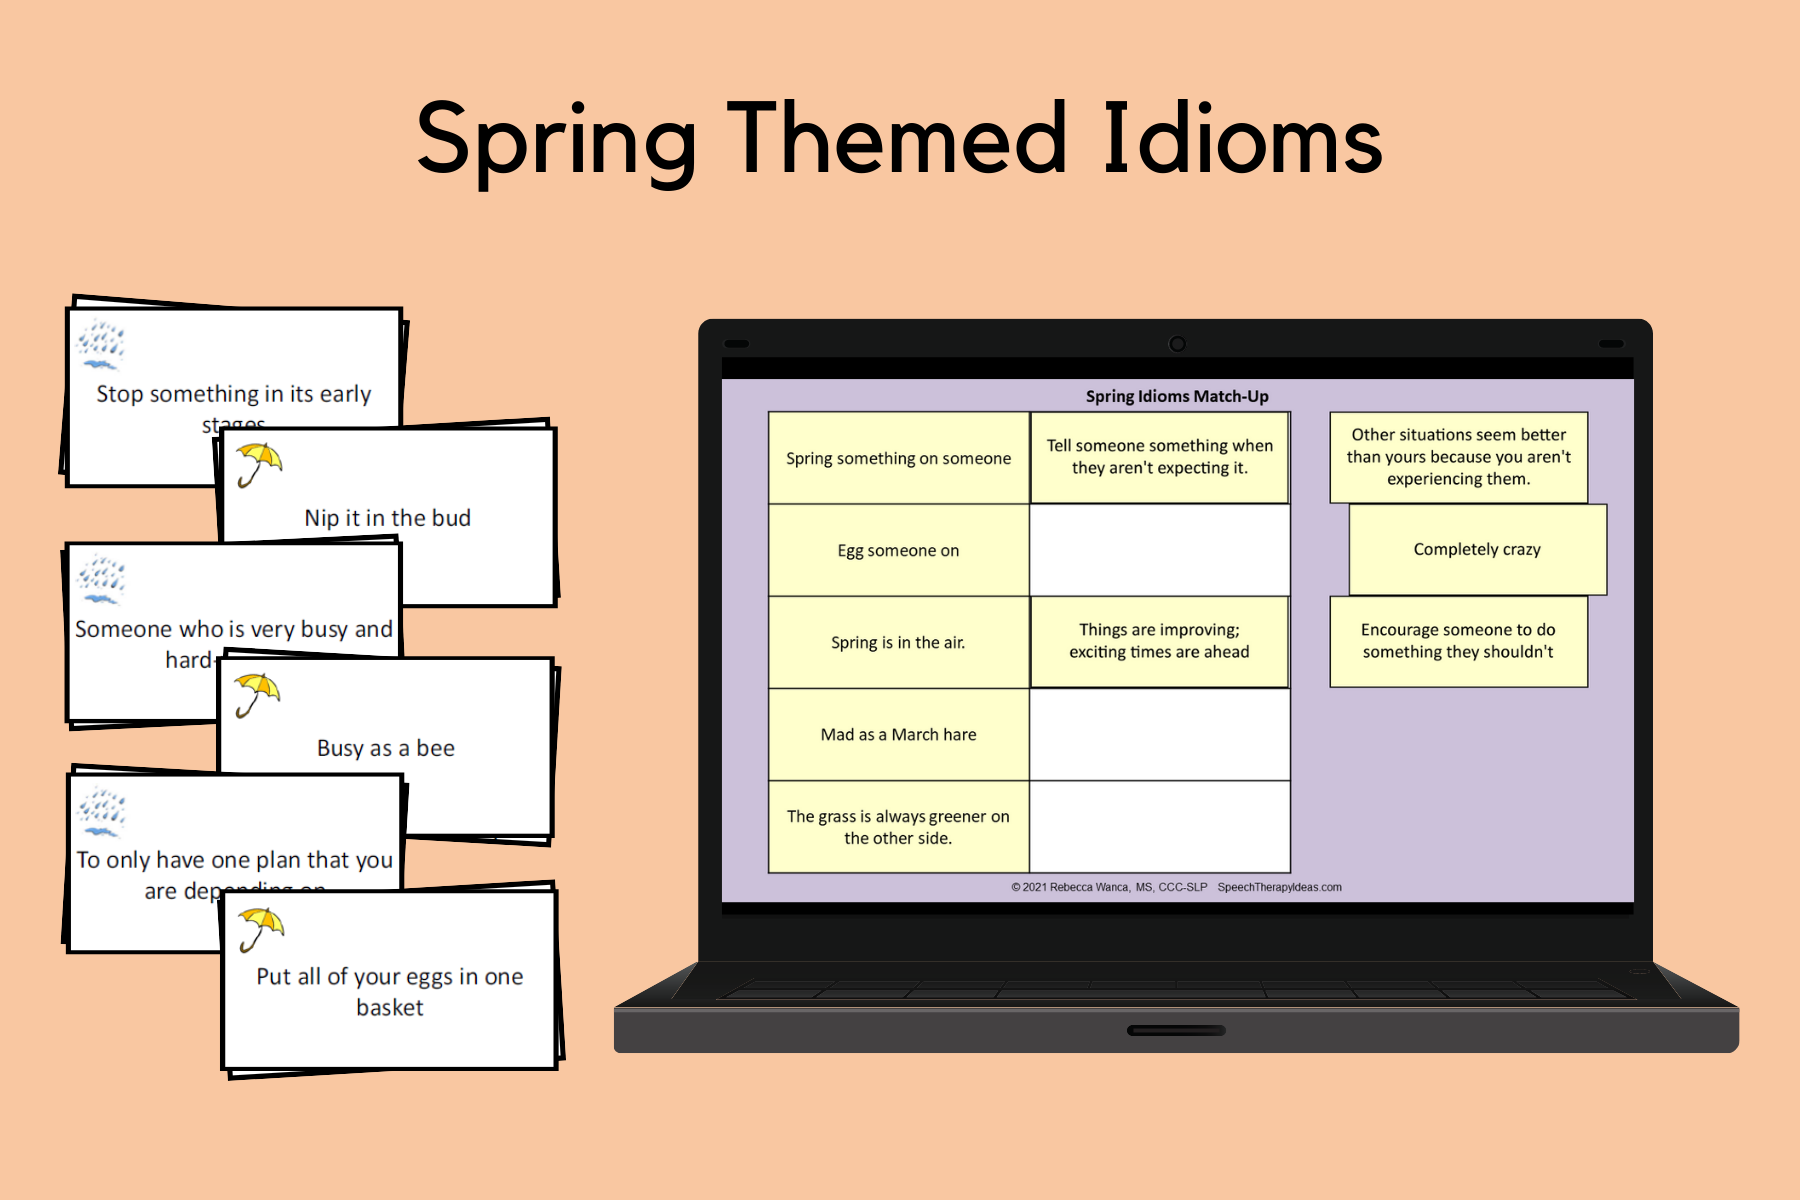 Spring Themed Idioms